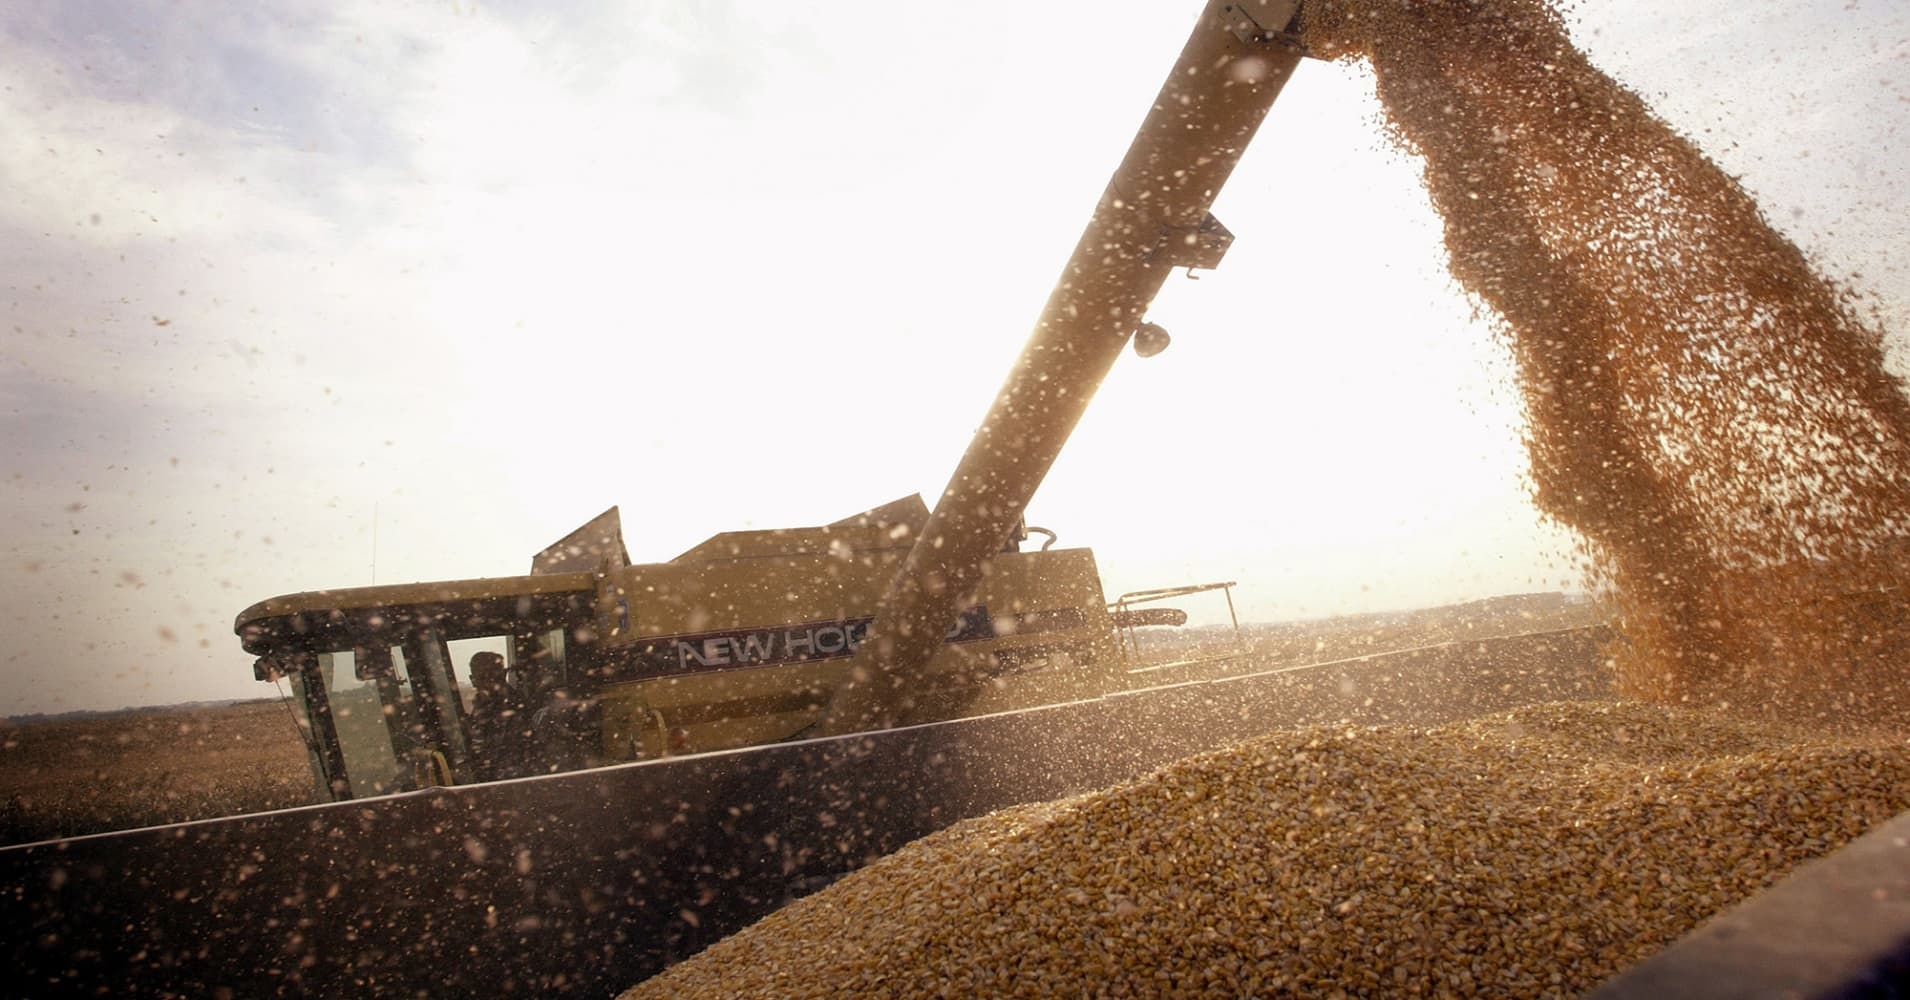 Farmer sentiment takes hit amid growing worries over trade war